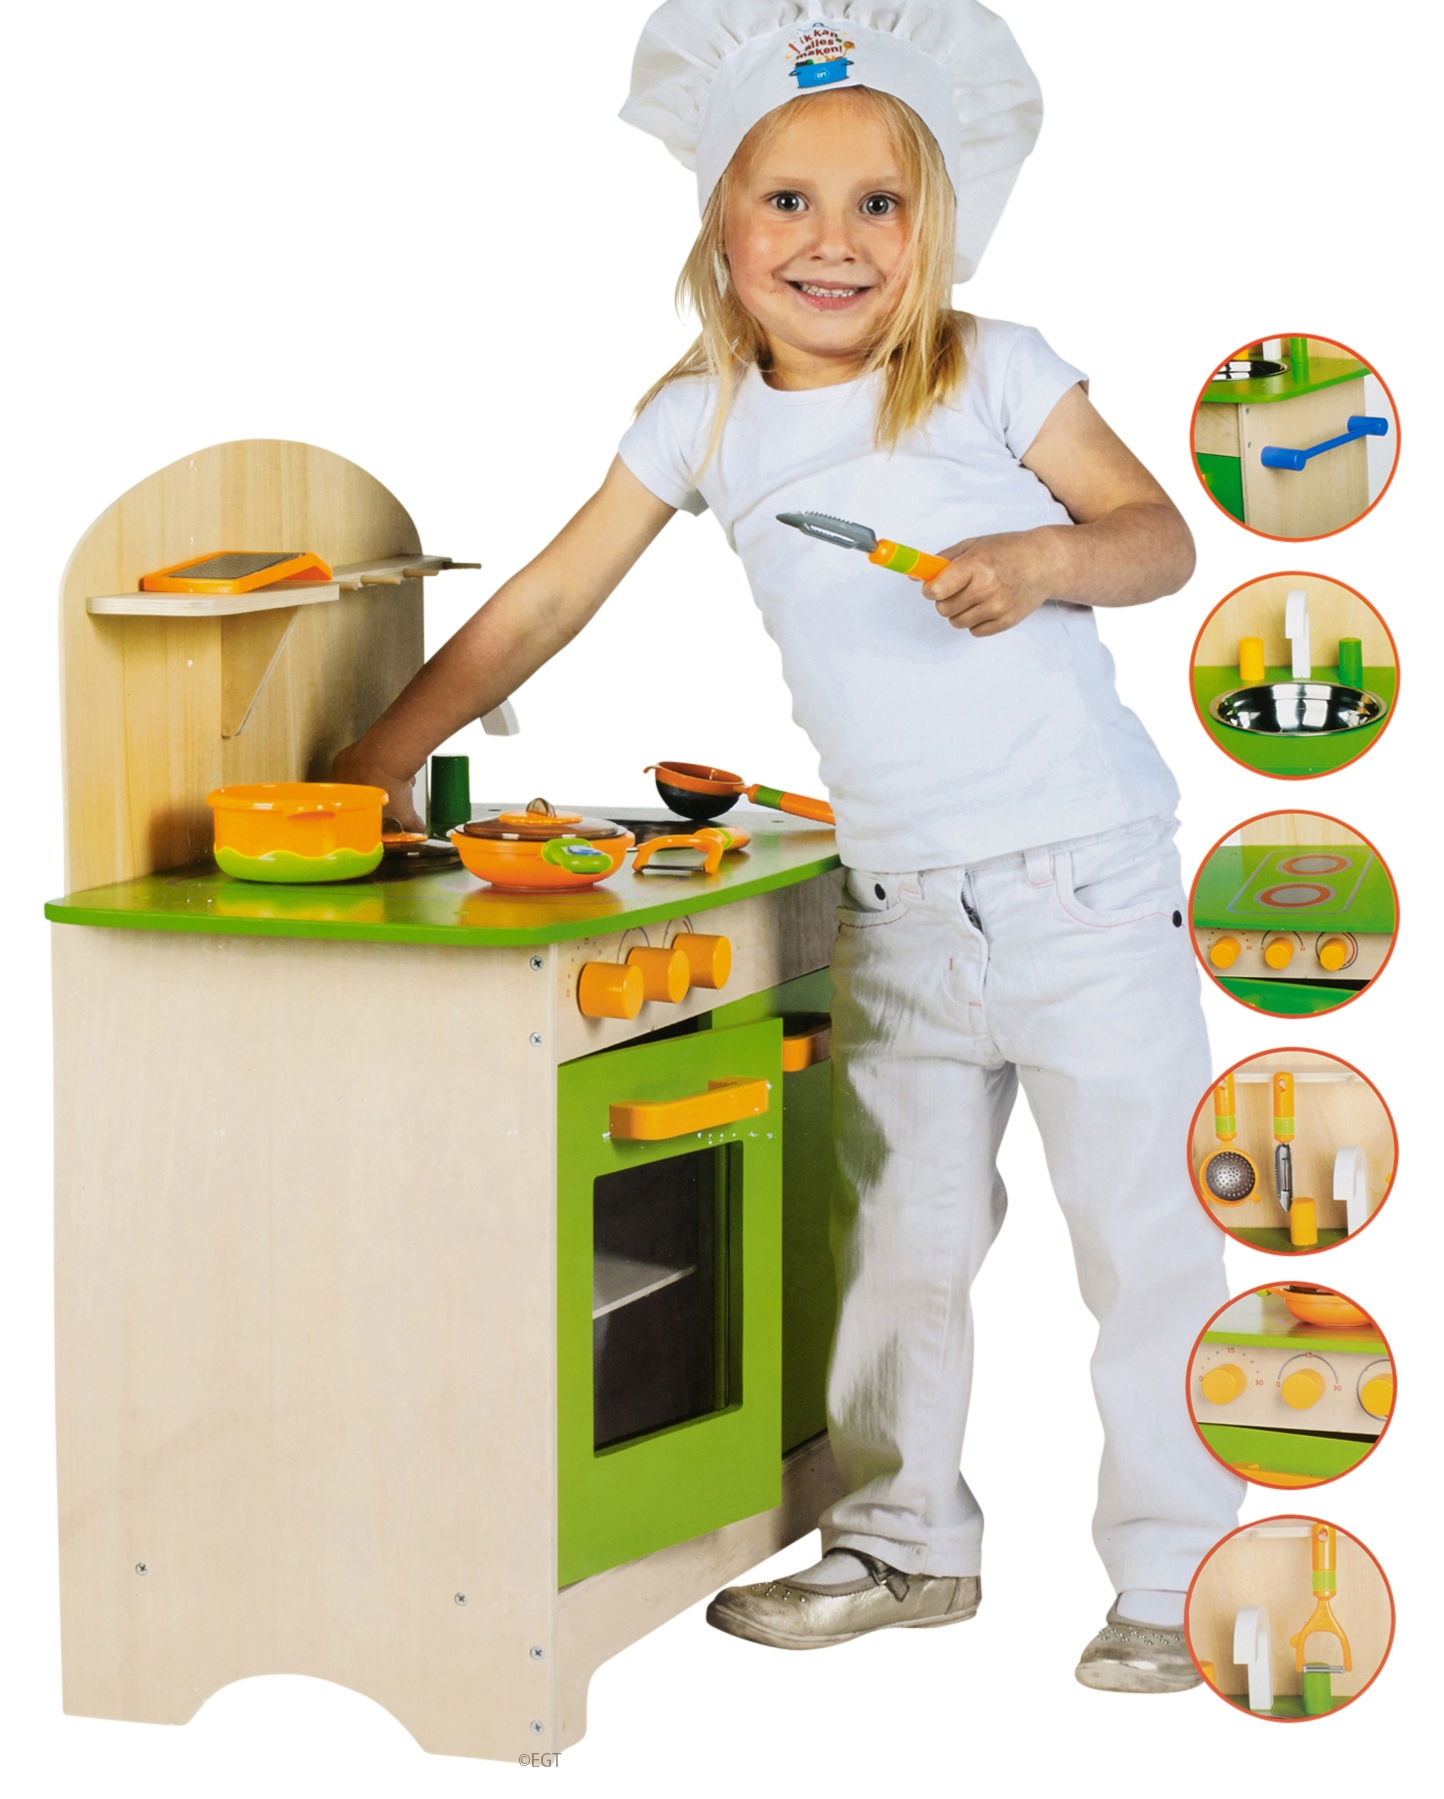 10 teilige teile holz k che kinder kochen rollenspiel set spielzeug chefkoch ebay. Black Bedroom Furniture Sets. Home Design Ideas